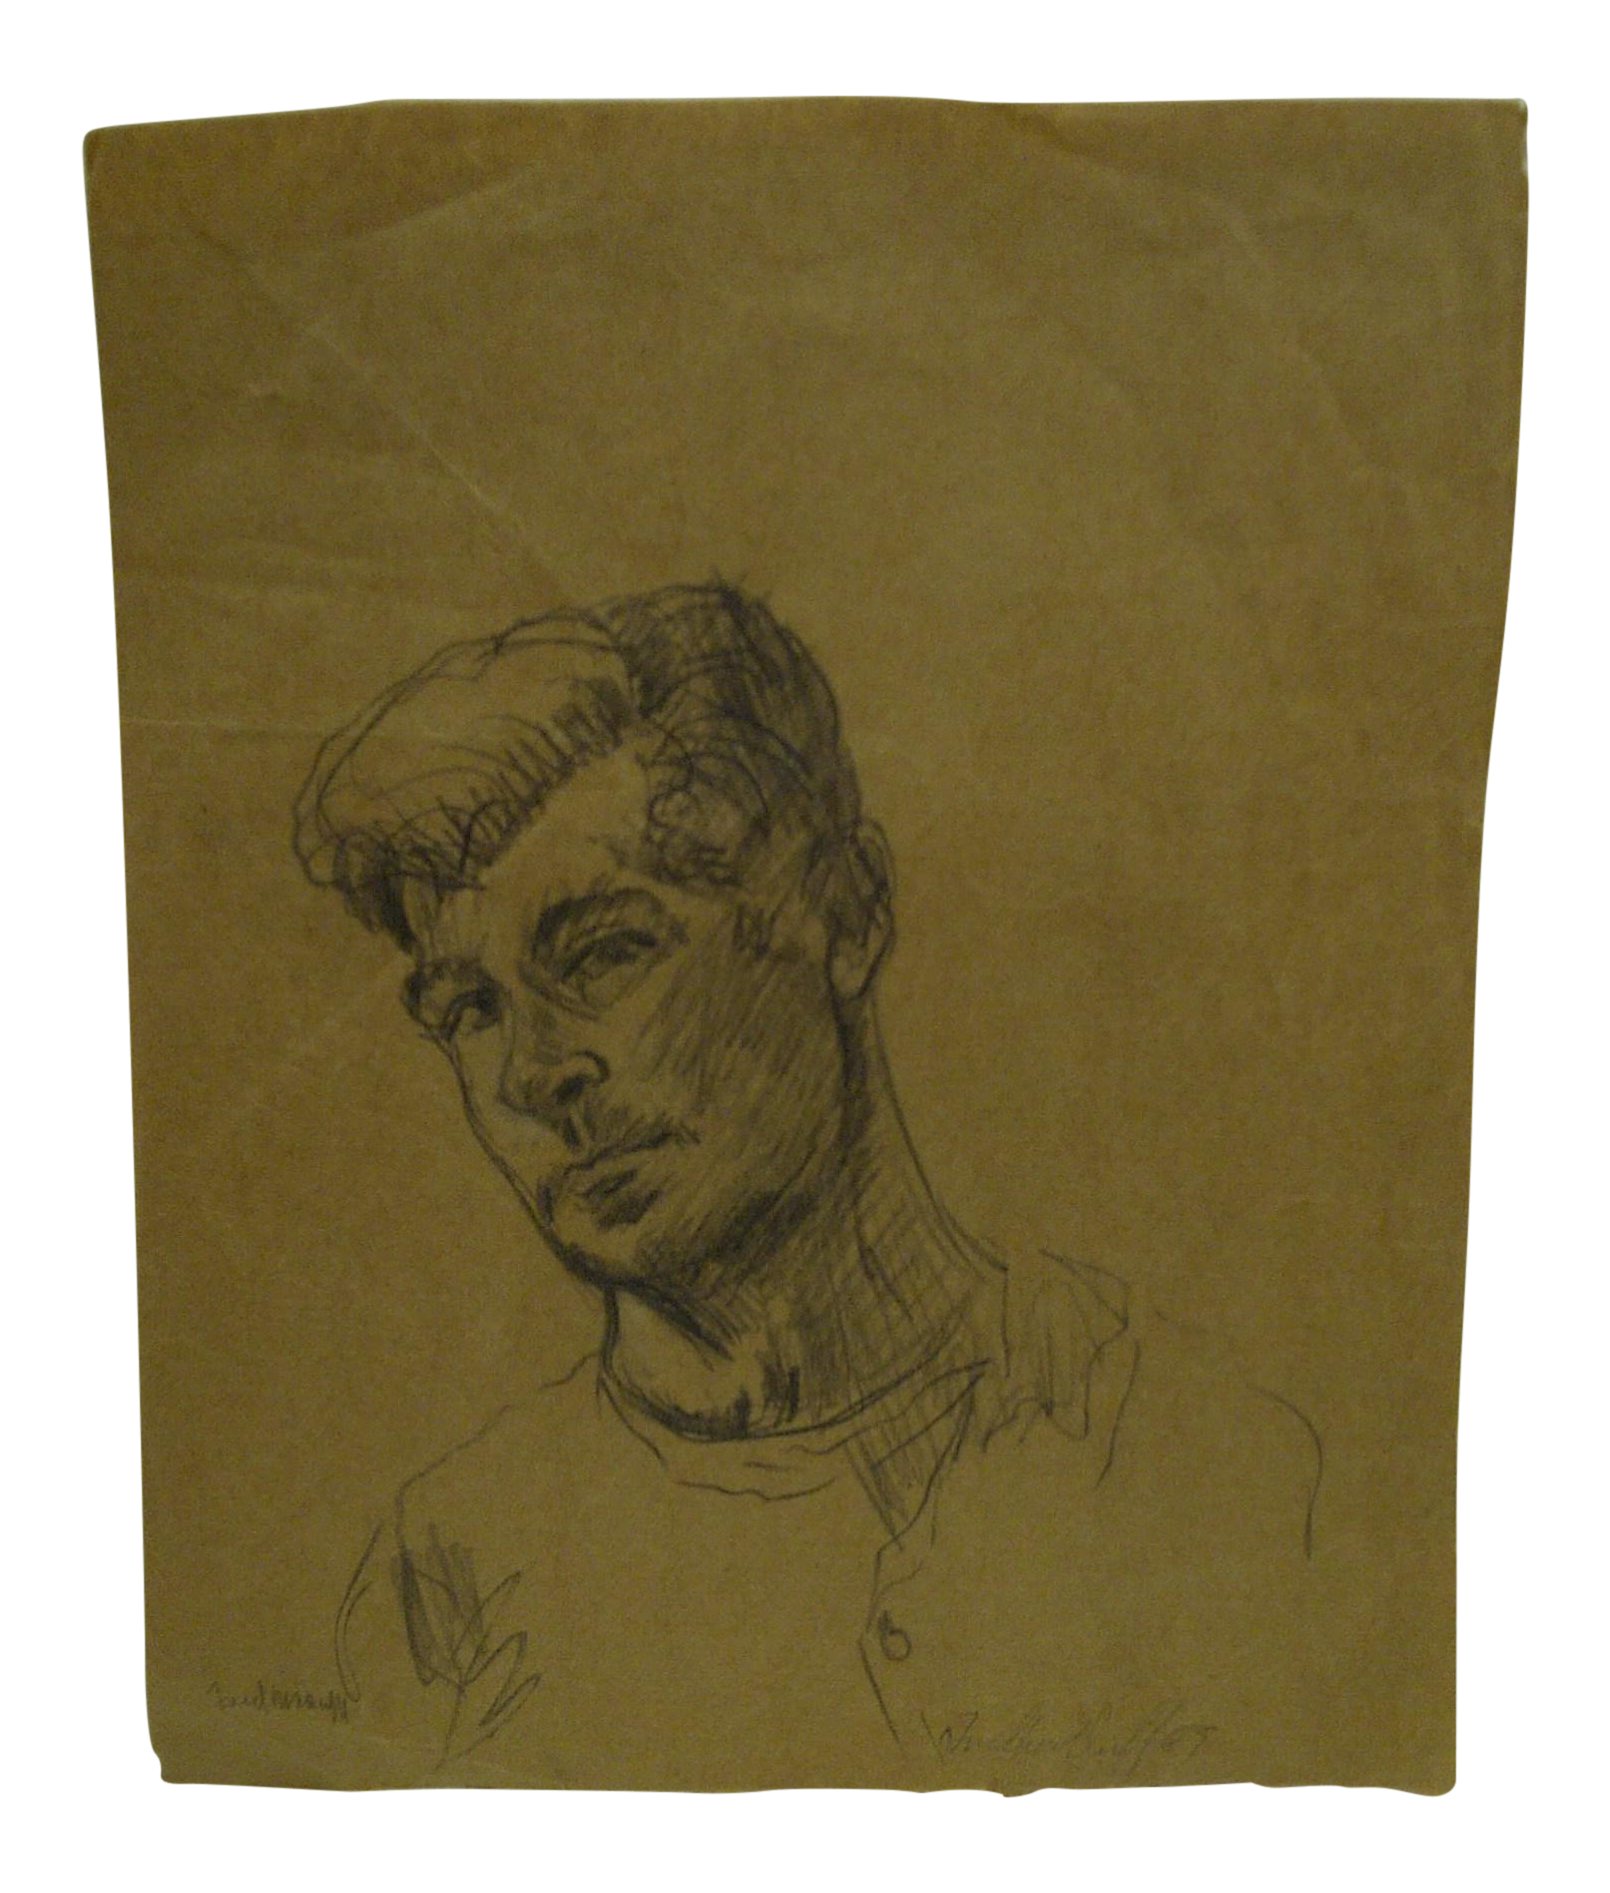 Self drawing sketch. Original portrait signed by